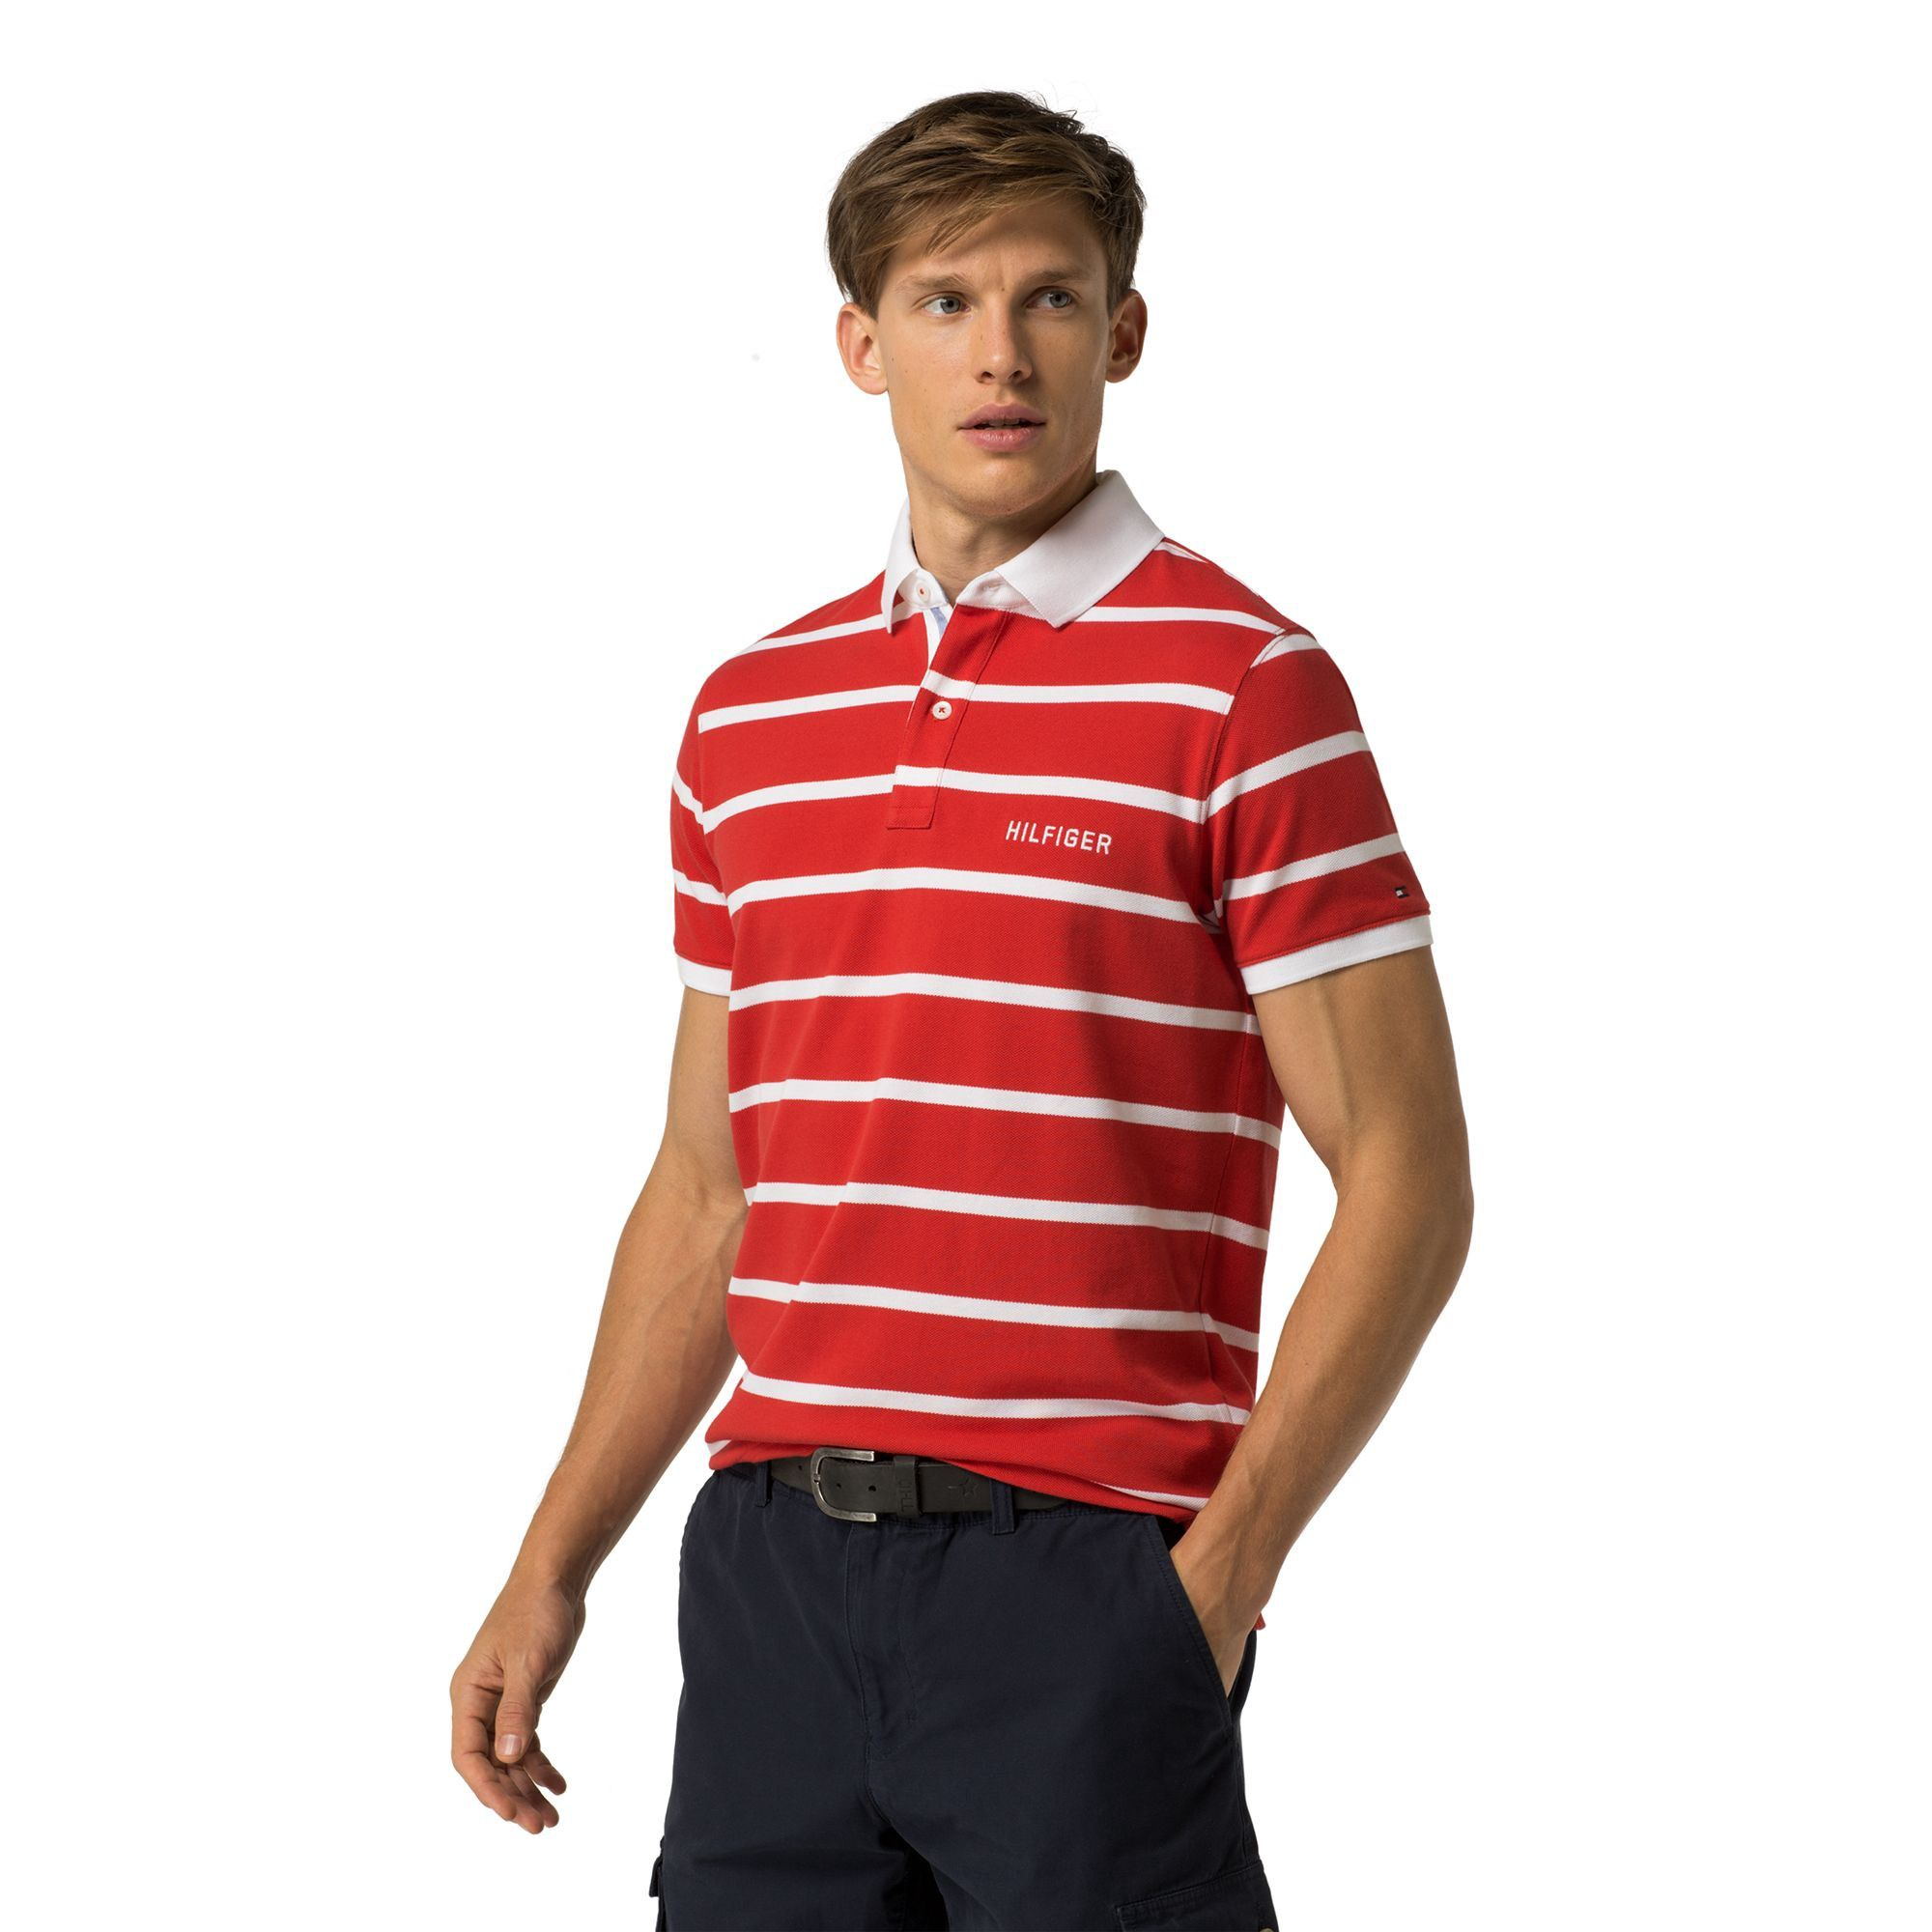 Polos · TOMMY HILFIGER STRIPE SLIM FIT POLO - MARS RED / CLASSIC WHITE.